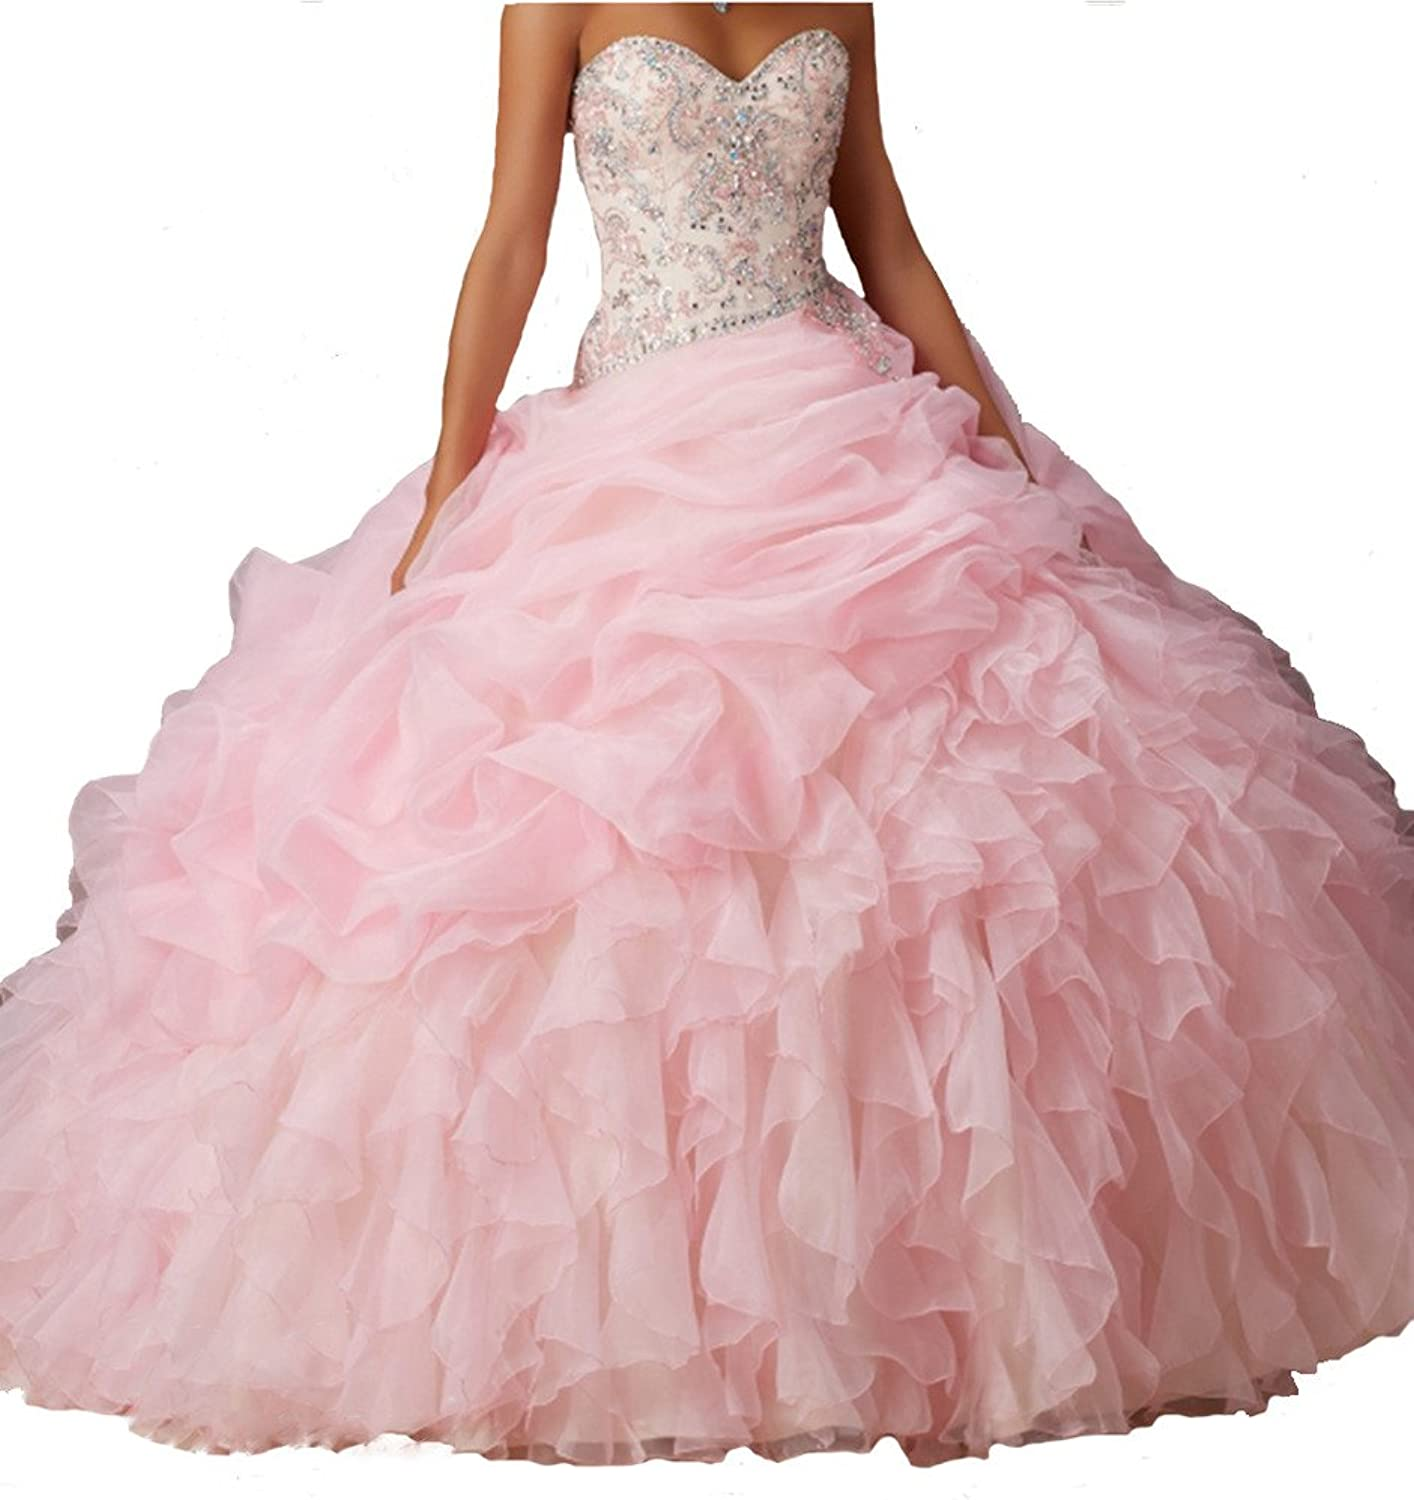 PuTao Women's Sweetheart Beads Princess Sweet 15 Quinceanera Dresses